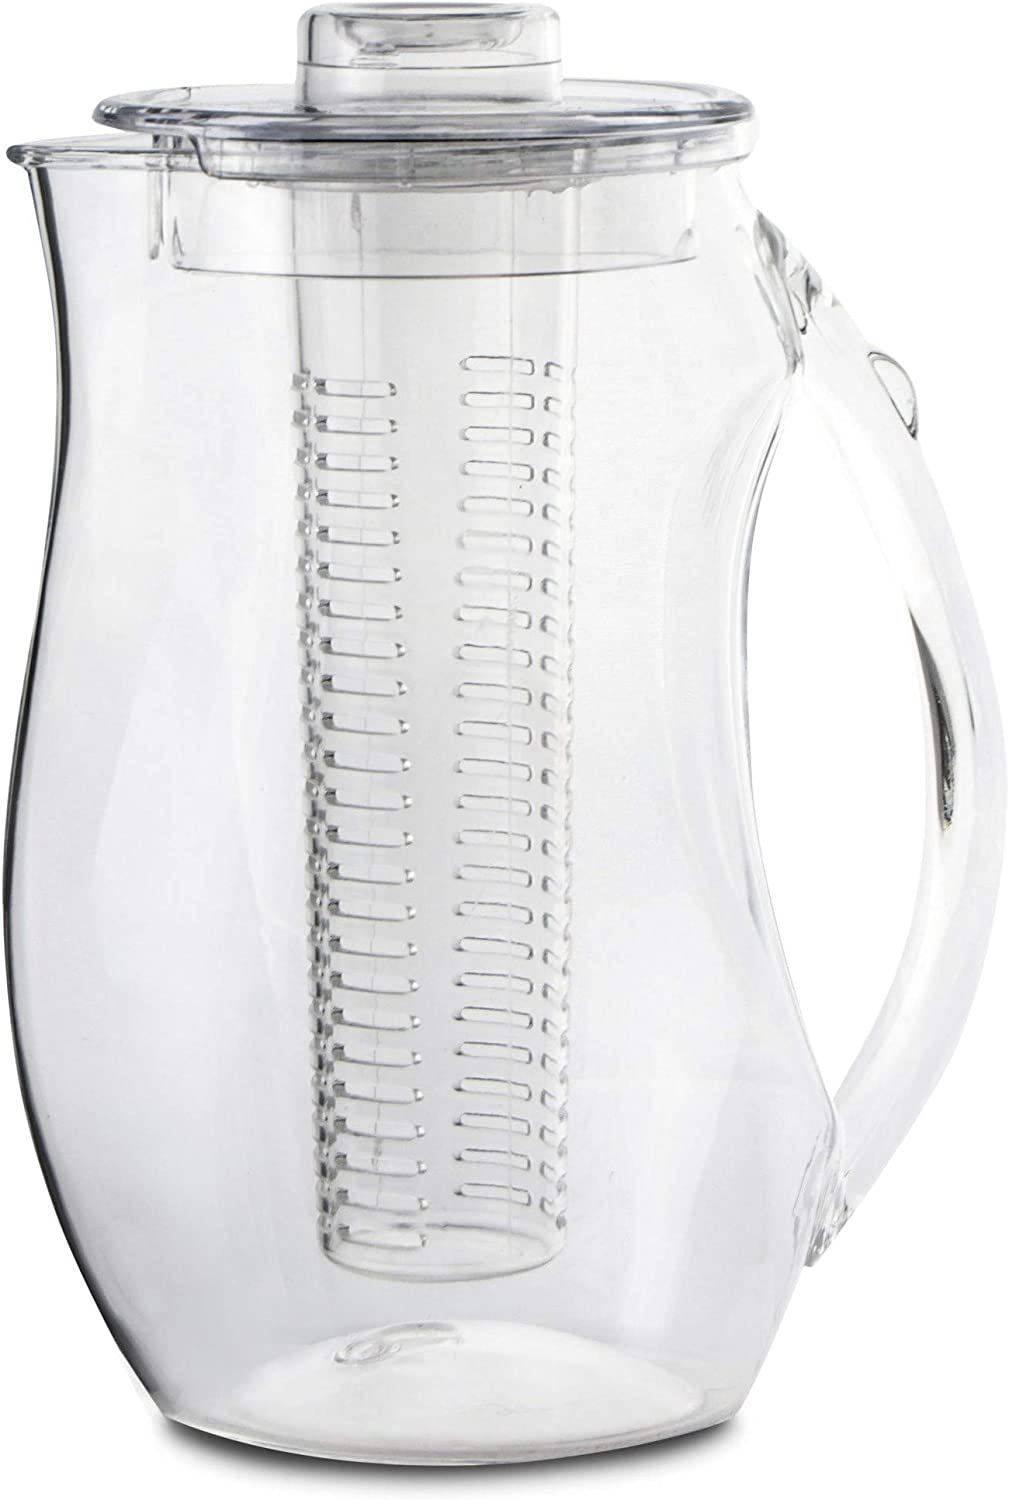 Circleware Acrylic Beverage Dispenser Pitcher with Fruit Infuser, Tube Insert, Lid & Handle Huge 94.6 Ounce-2.8 Liters Carafe for Water Beer Wine Liquor Iced Tea Punch & Best Selling Drinks